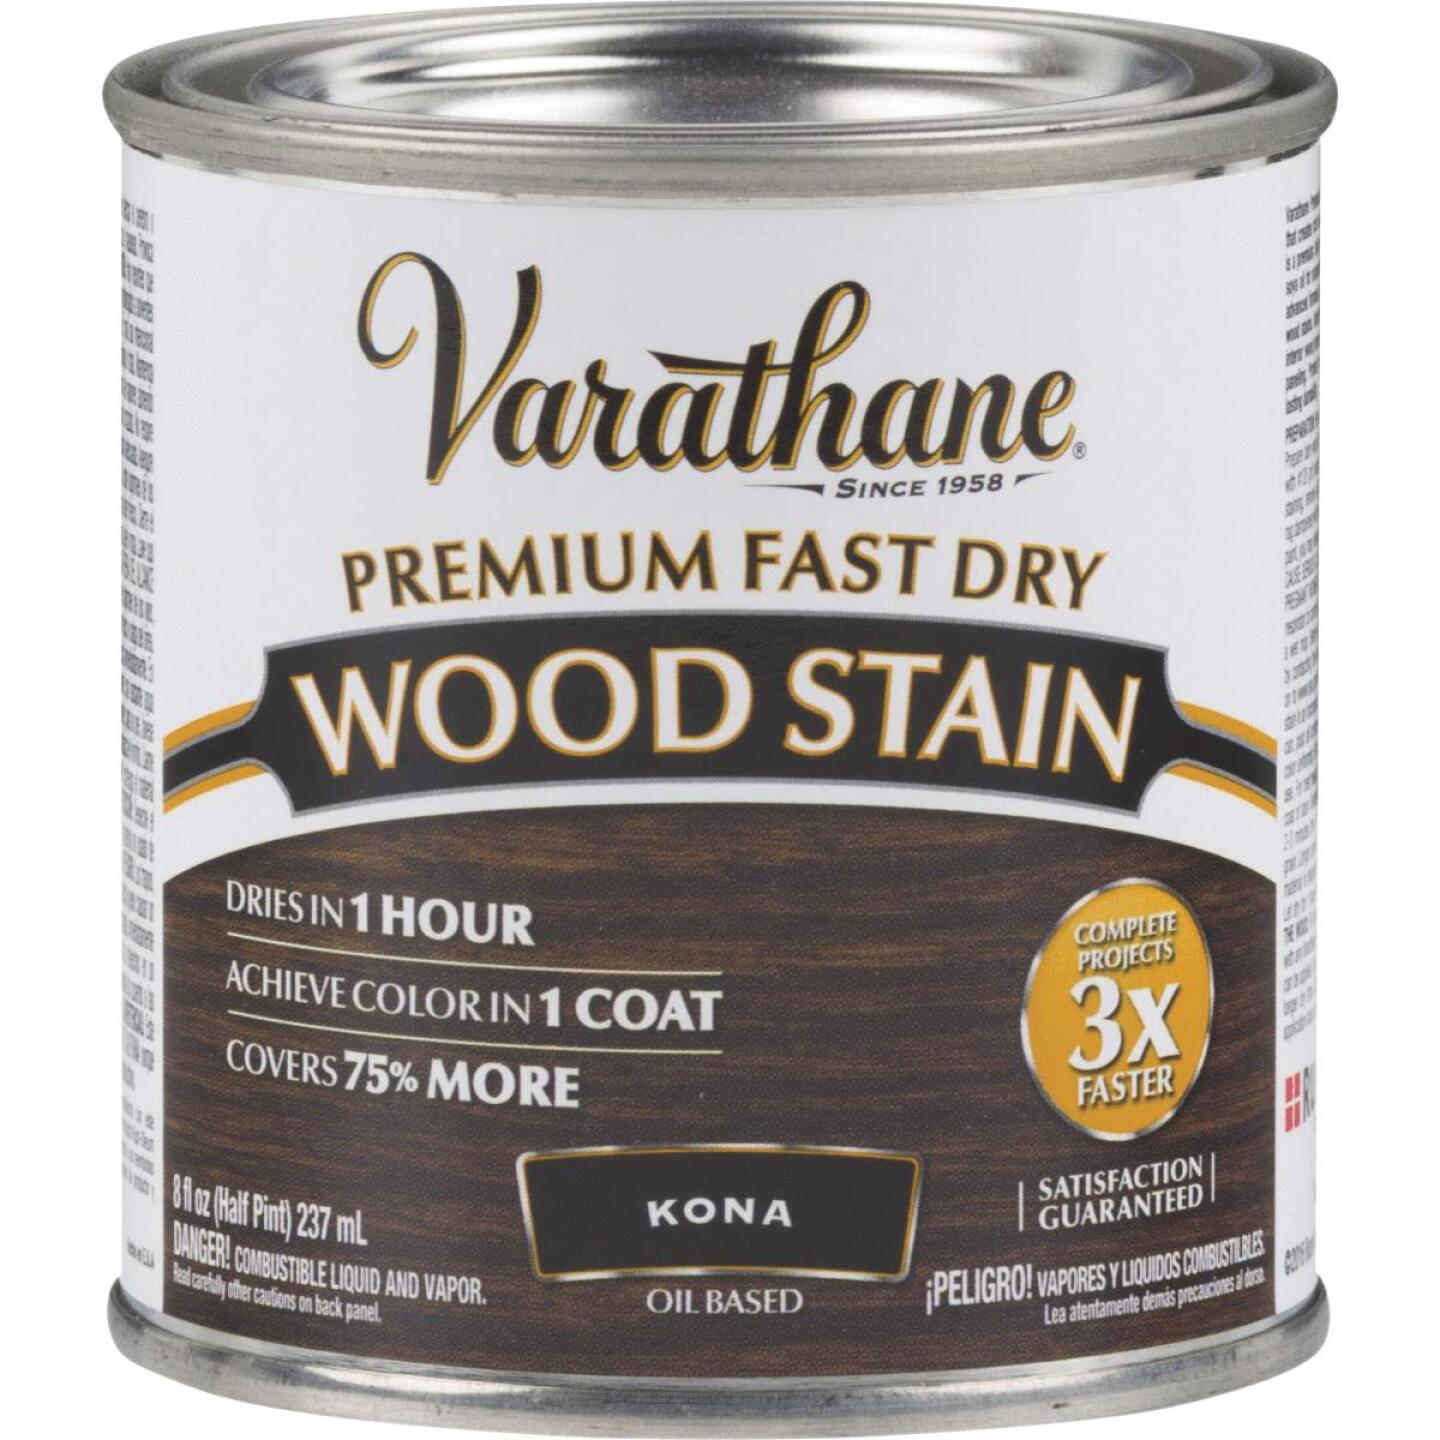 Varathane Fast Dry Kona Wood Urethane Modified Alkyd Interior Wood Stain, 1/2 Pt. Image 1